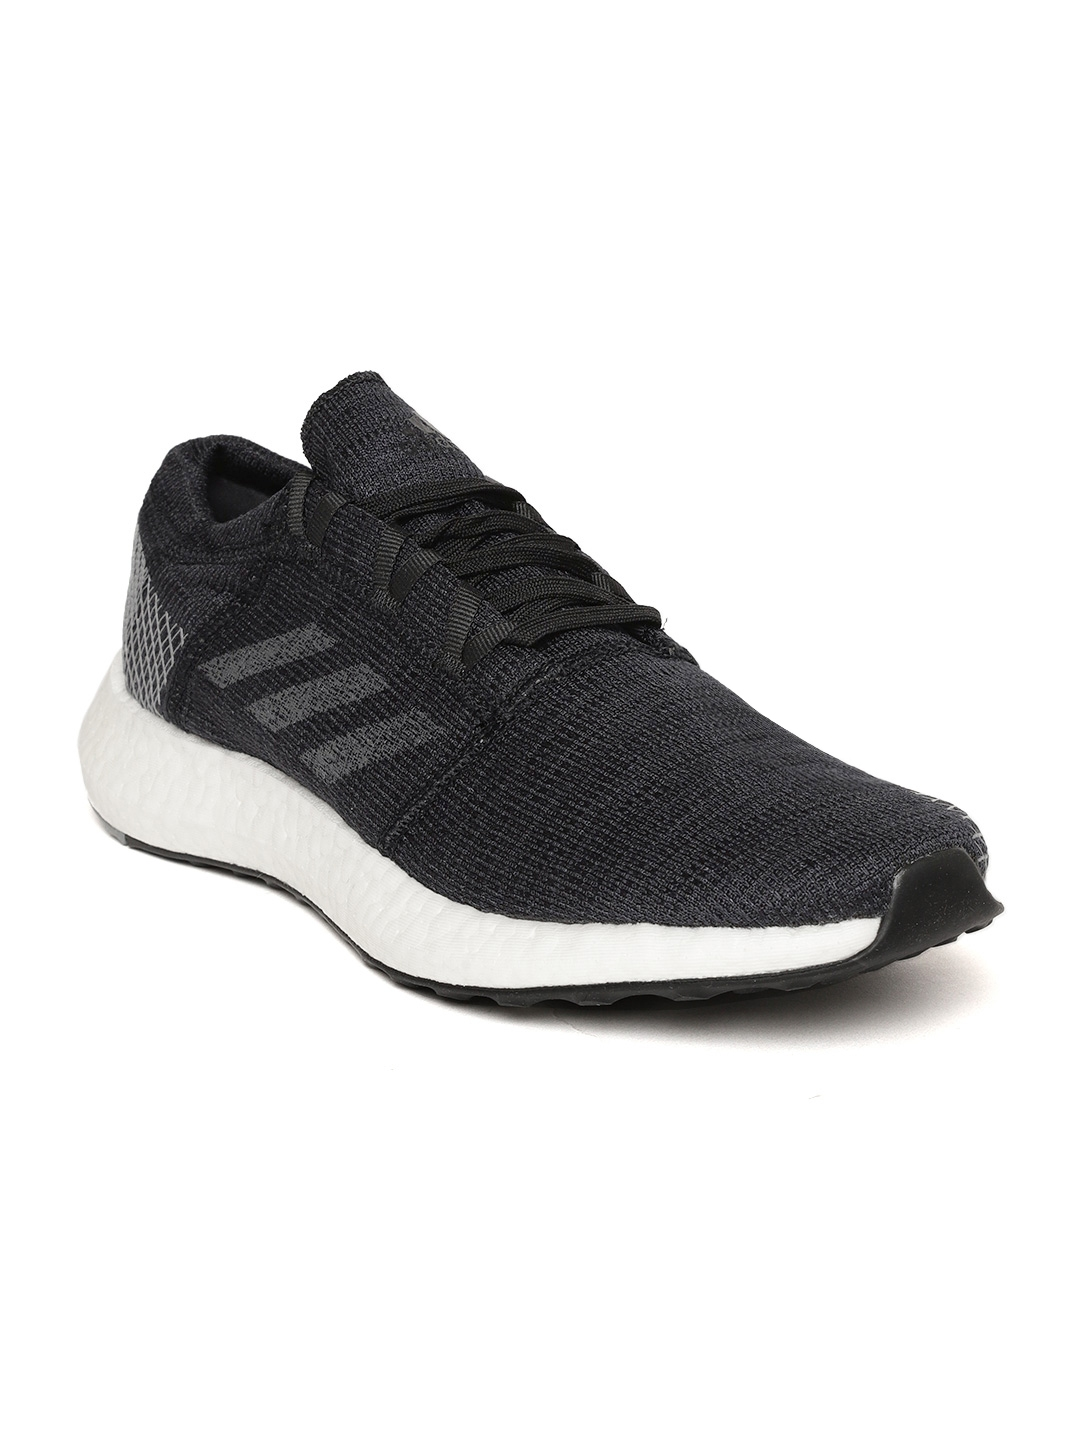 31d38dcf5 Buy ADIDAS Men Black   Grey Pureboost Go Running Shoes - Sports ...